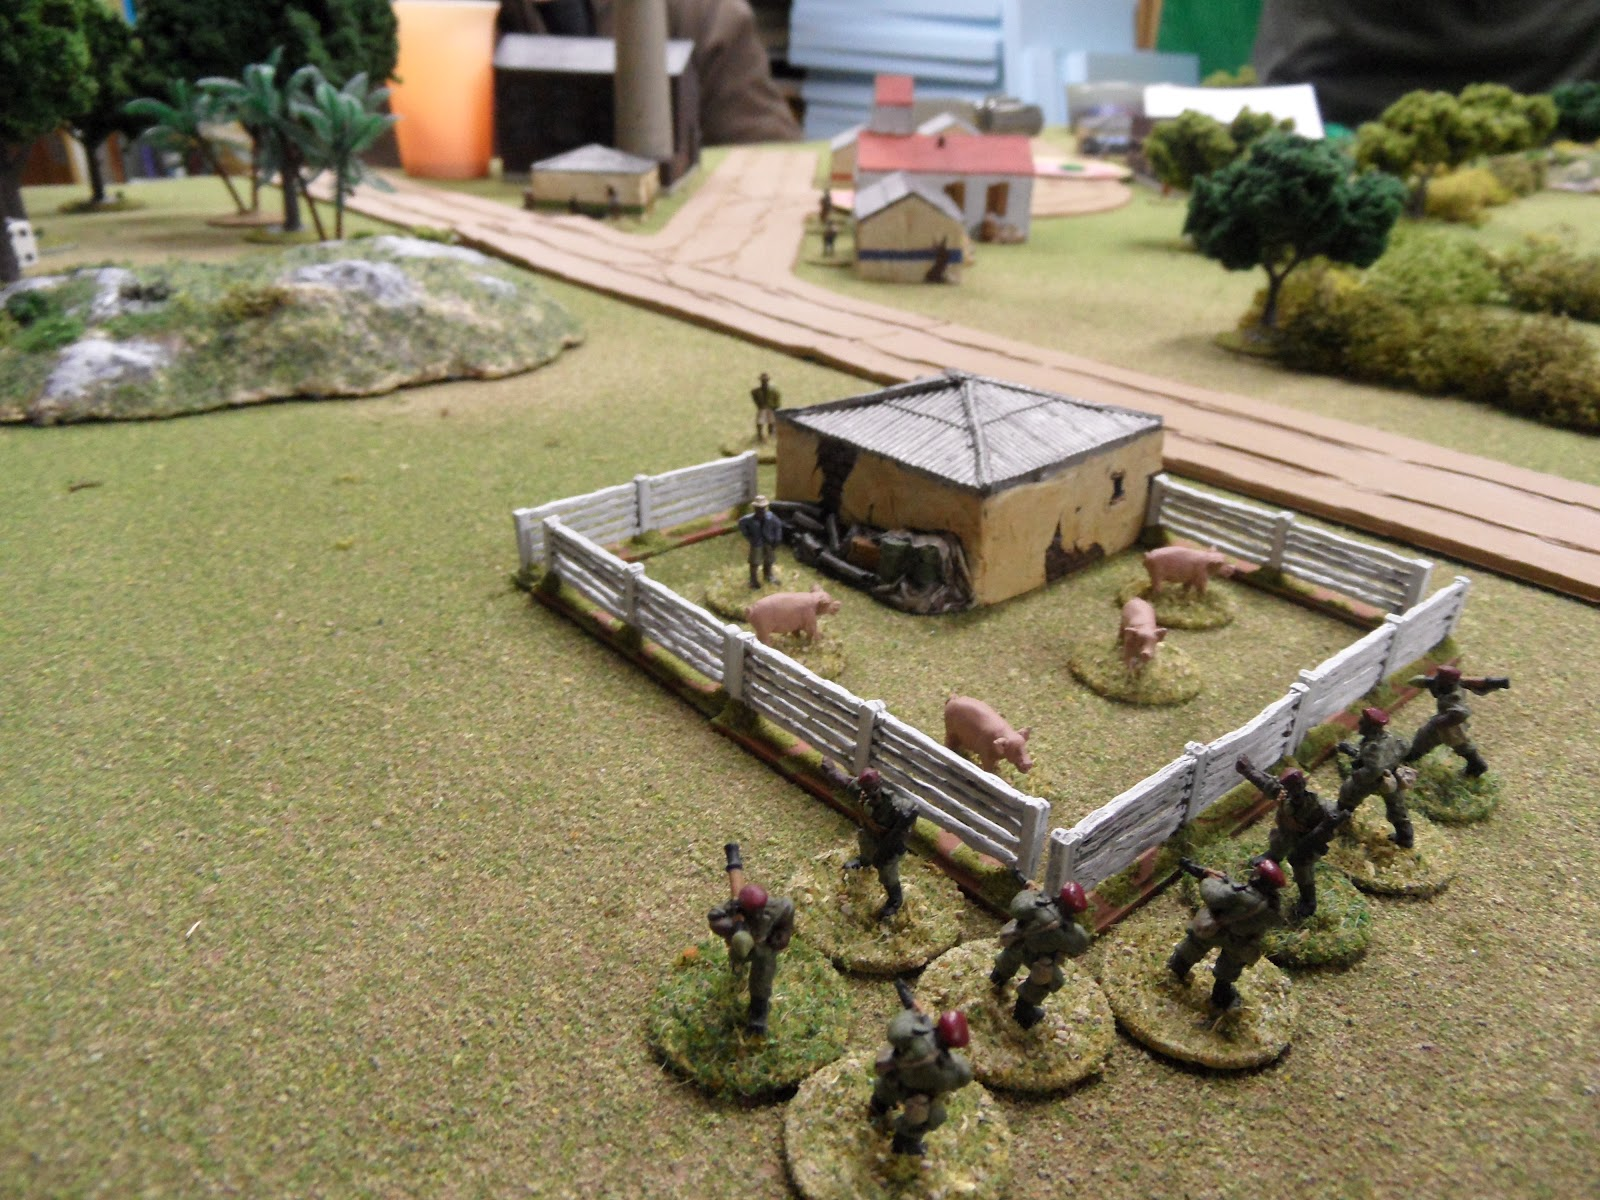 The Guards gain control of the pig farm.